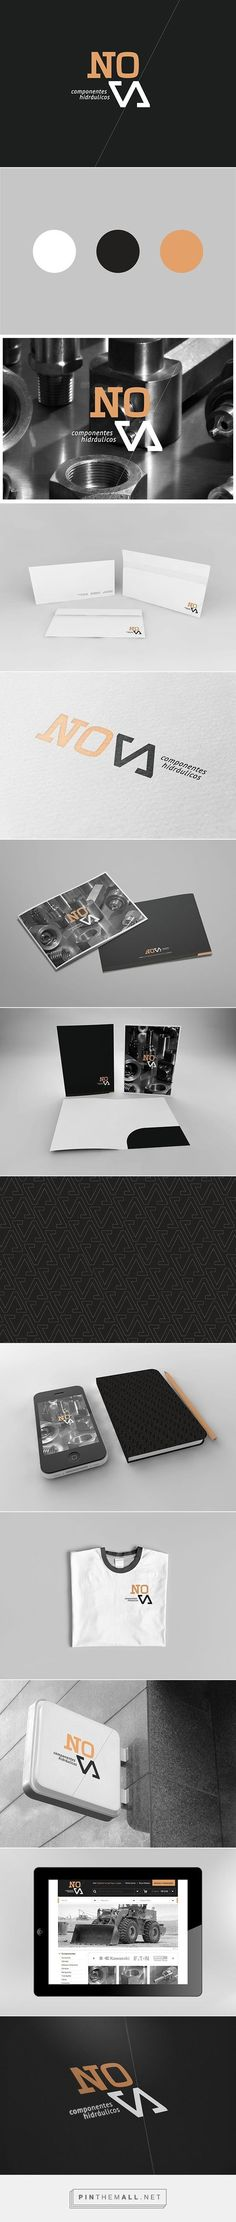 (54) Nova Corporate Identity on Behance | Fivestar Branding – Design and Branding Agency & Inspiration Gallery | Branding | Pinterest / Branding / Ideas / Inspiration / Brand / Design / Corporative / Hidraulic / Industrial / Gold / Black / Gray /